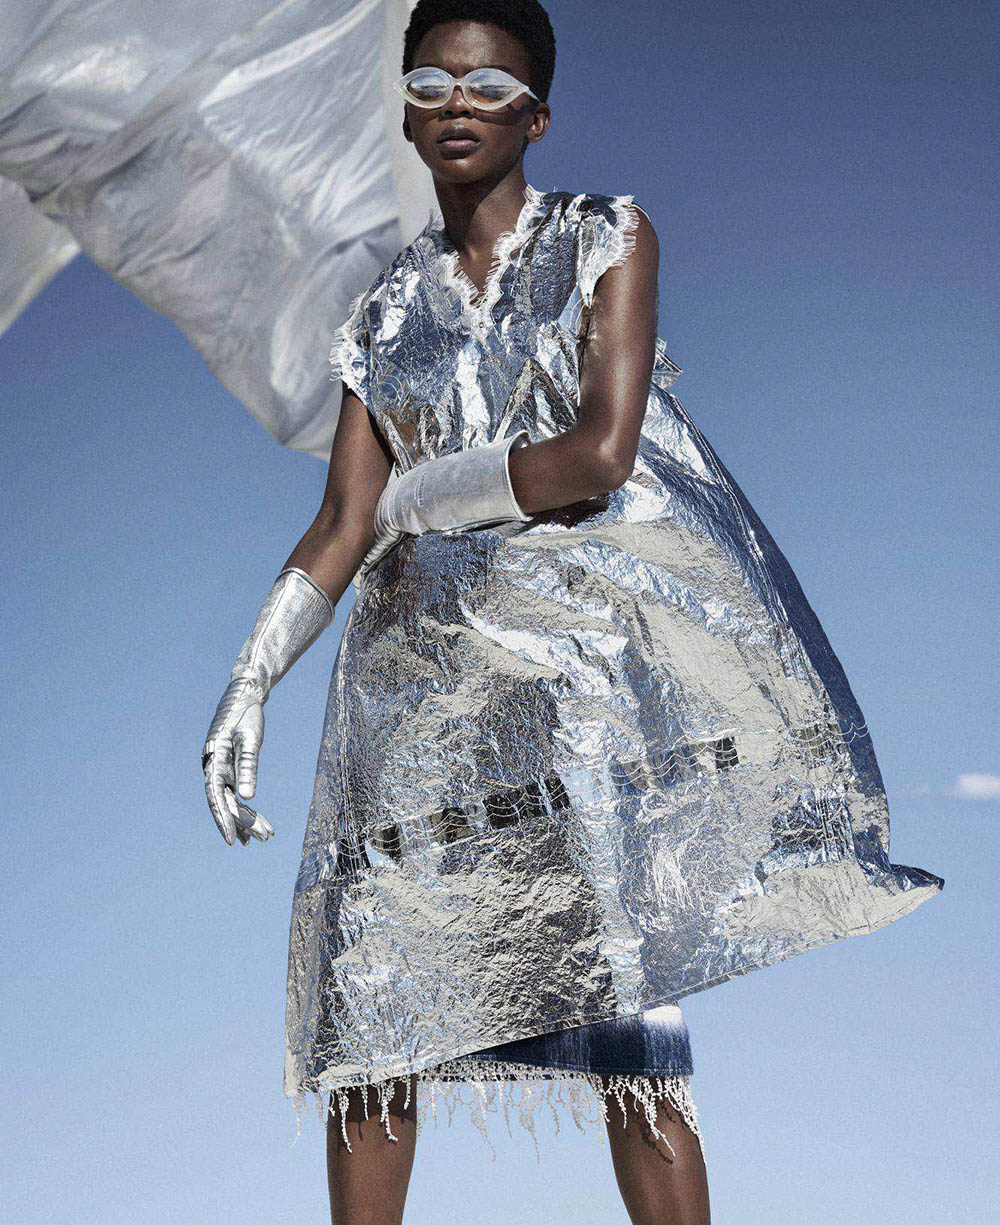 Aube Jolicoeur by Txema Yeste for Harper's Bazaar US September 2018